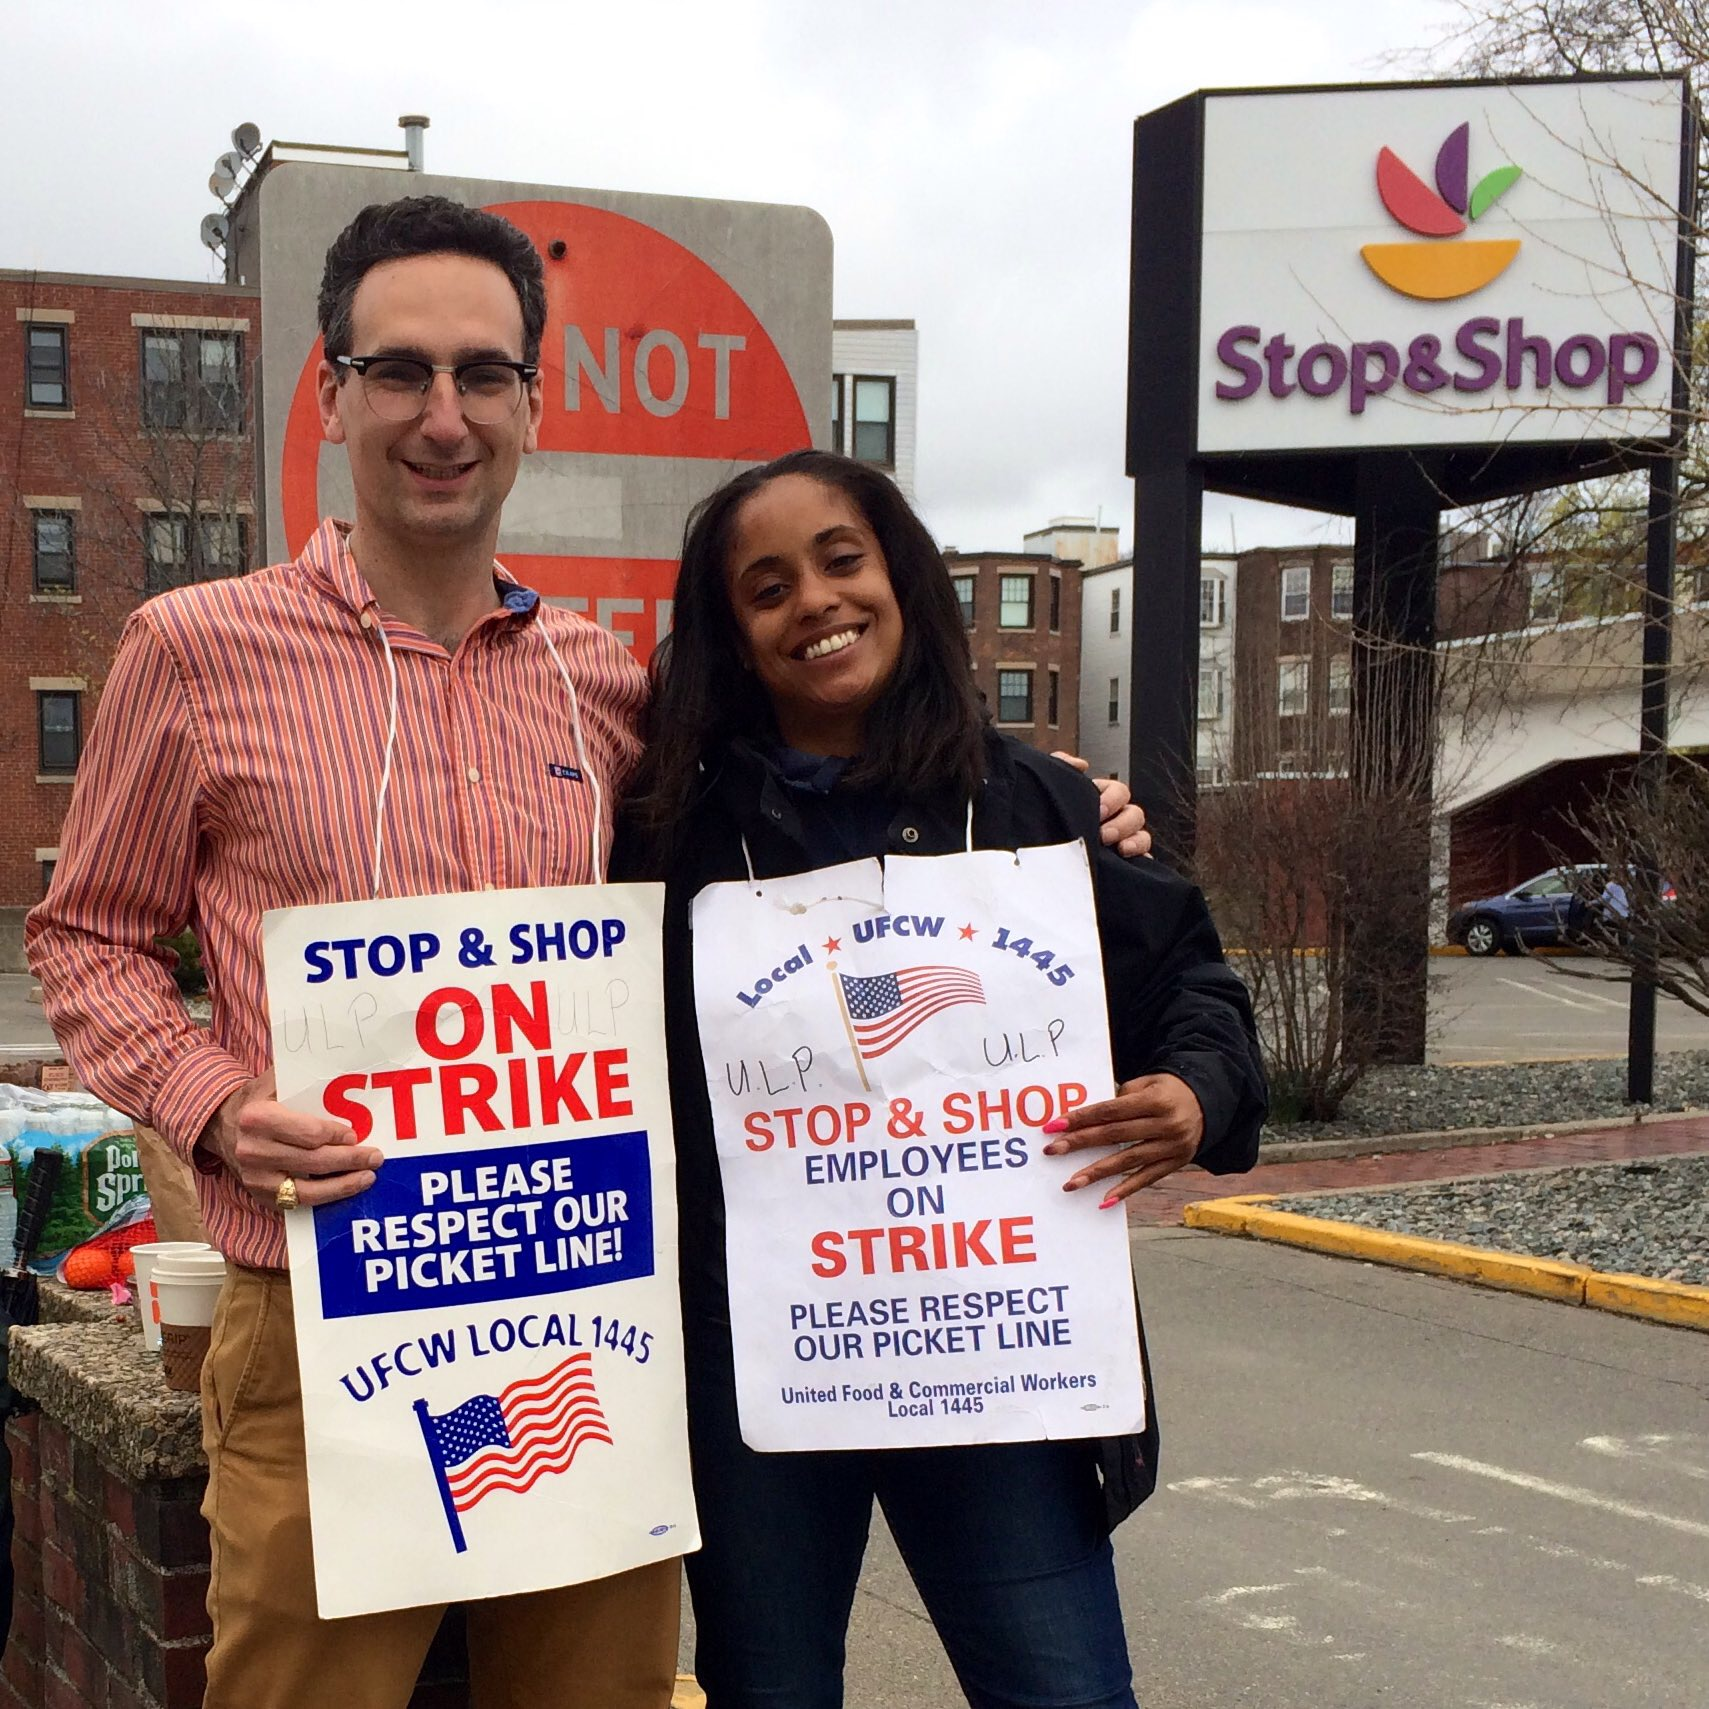 Tommy Vitolo with UFCW member at picket line